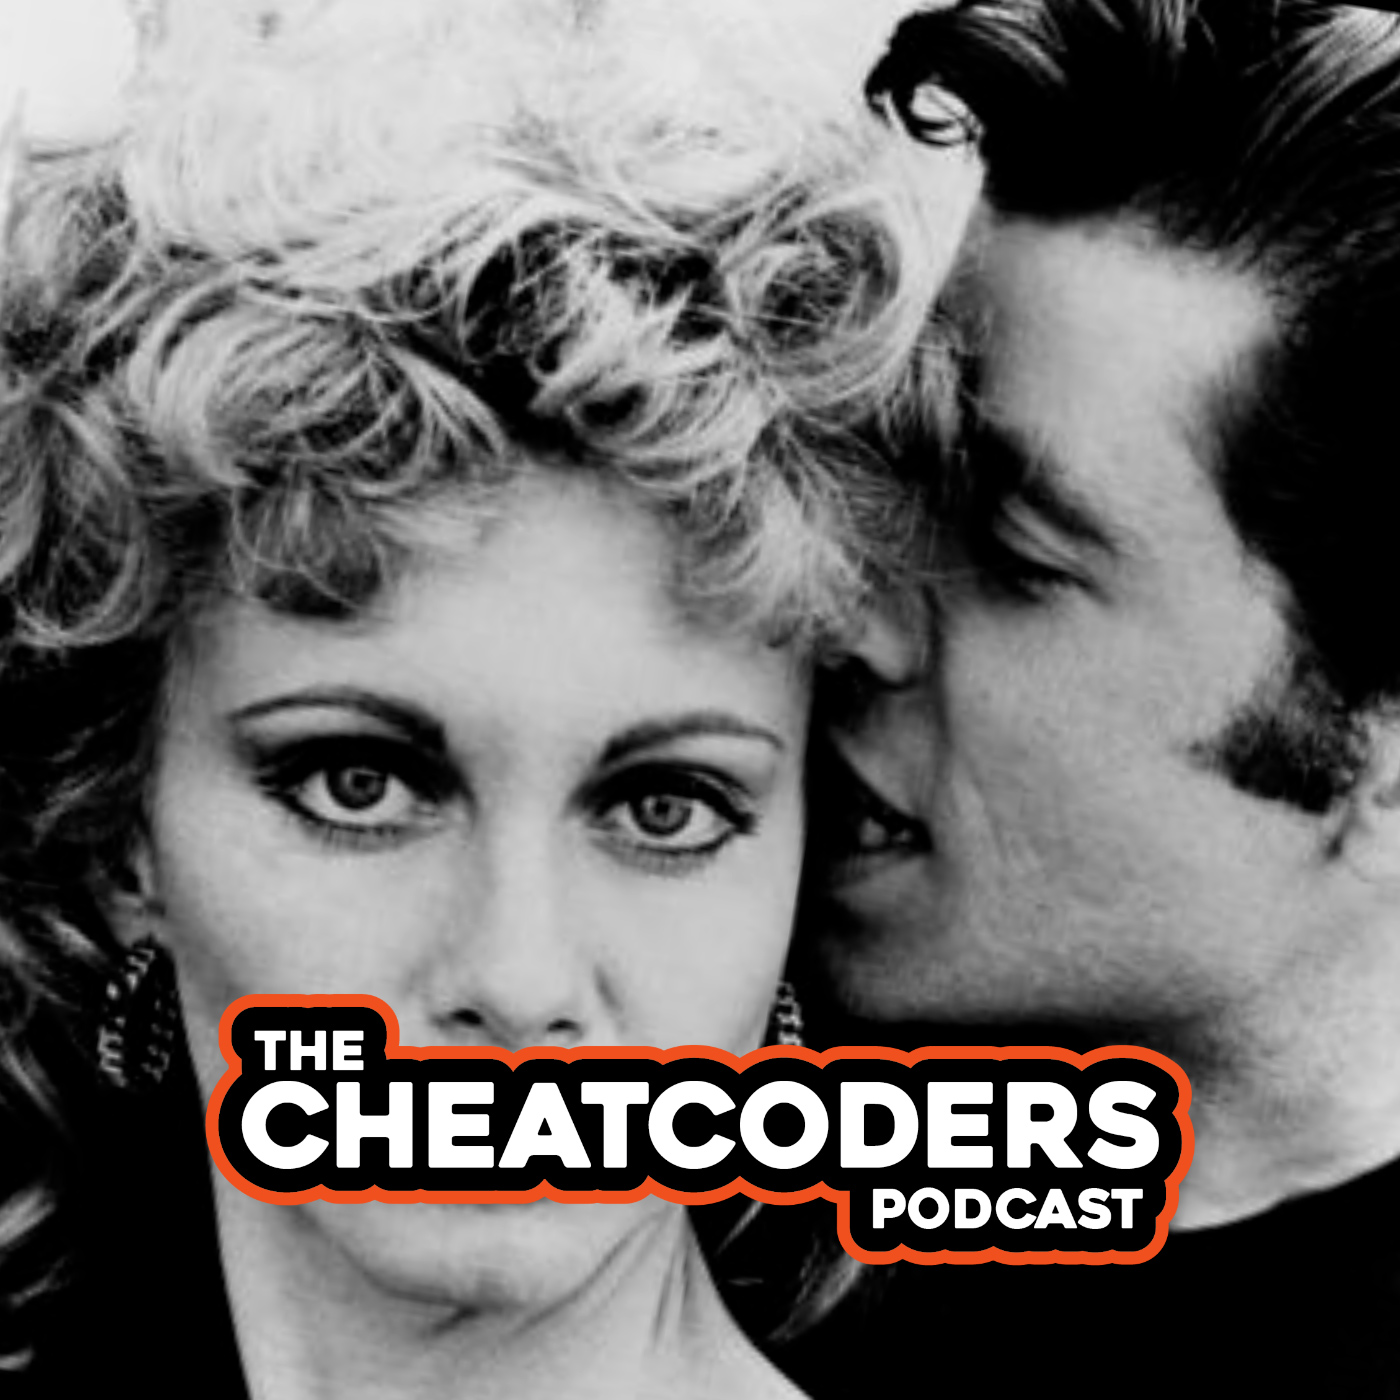 Artwork for podcast The Cheatcoders Podcast